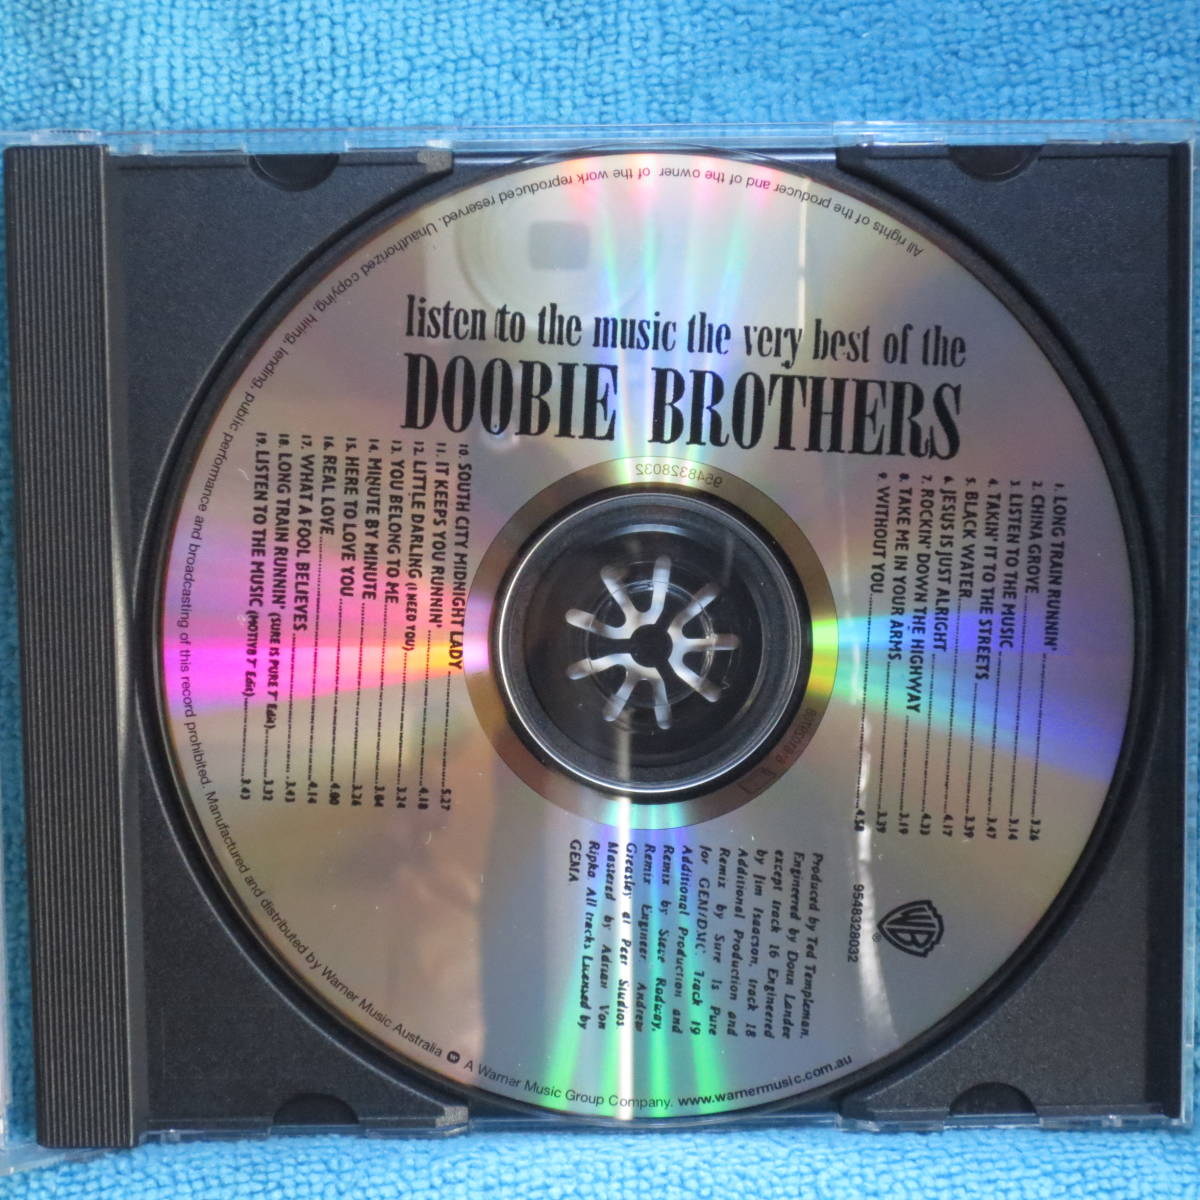 [CD] Listen To The Music ・ The Very Best Of The Doobie Brothers ☆ディスク美品_画像3